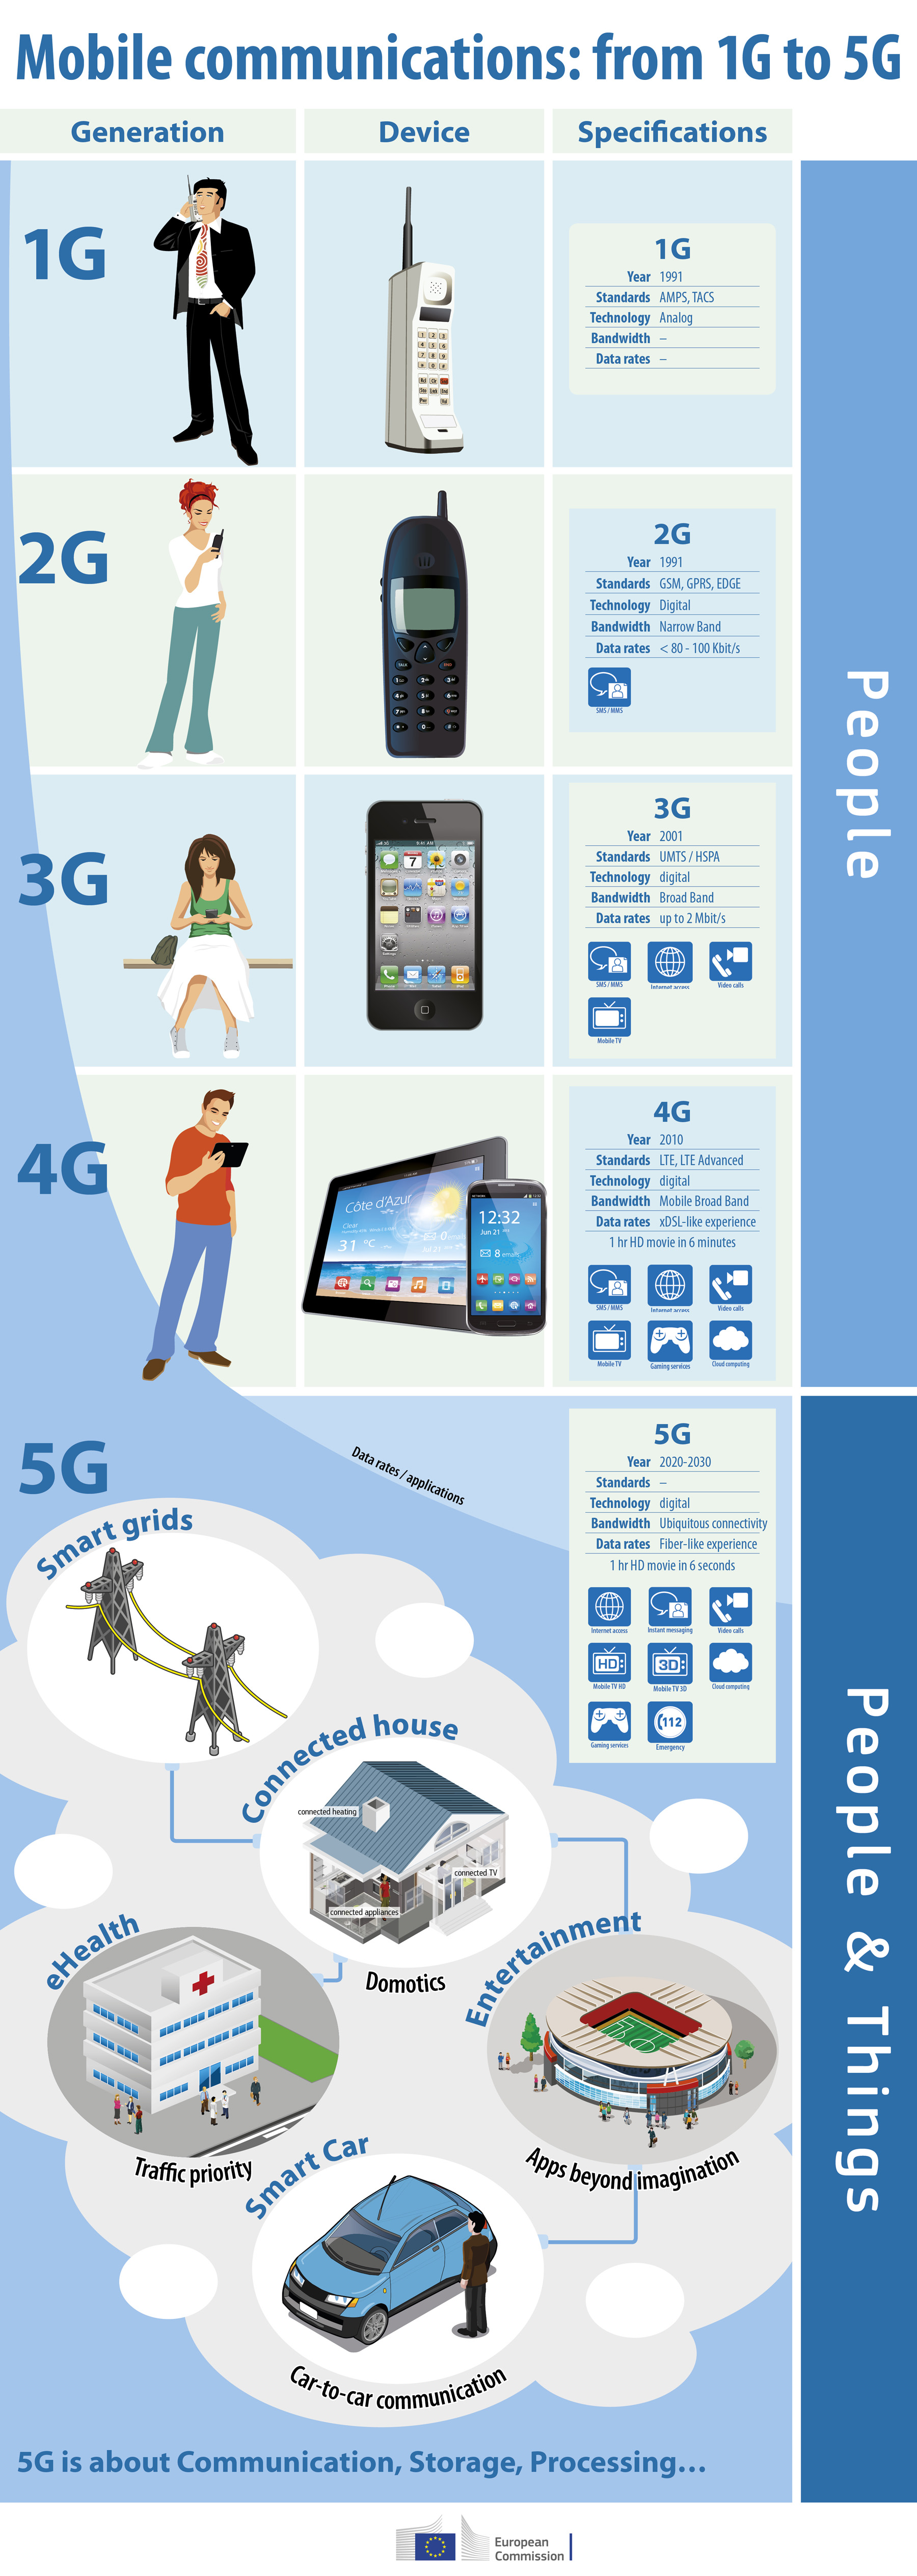 5G Mobile Communications Infographic